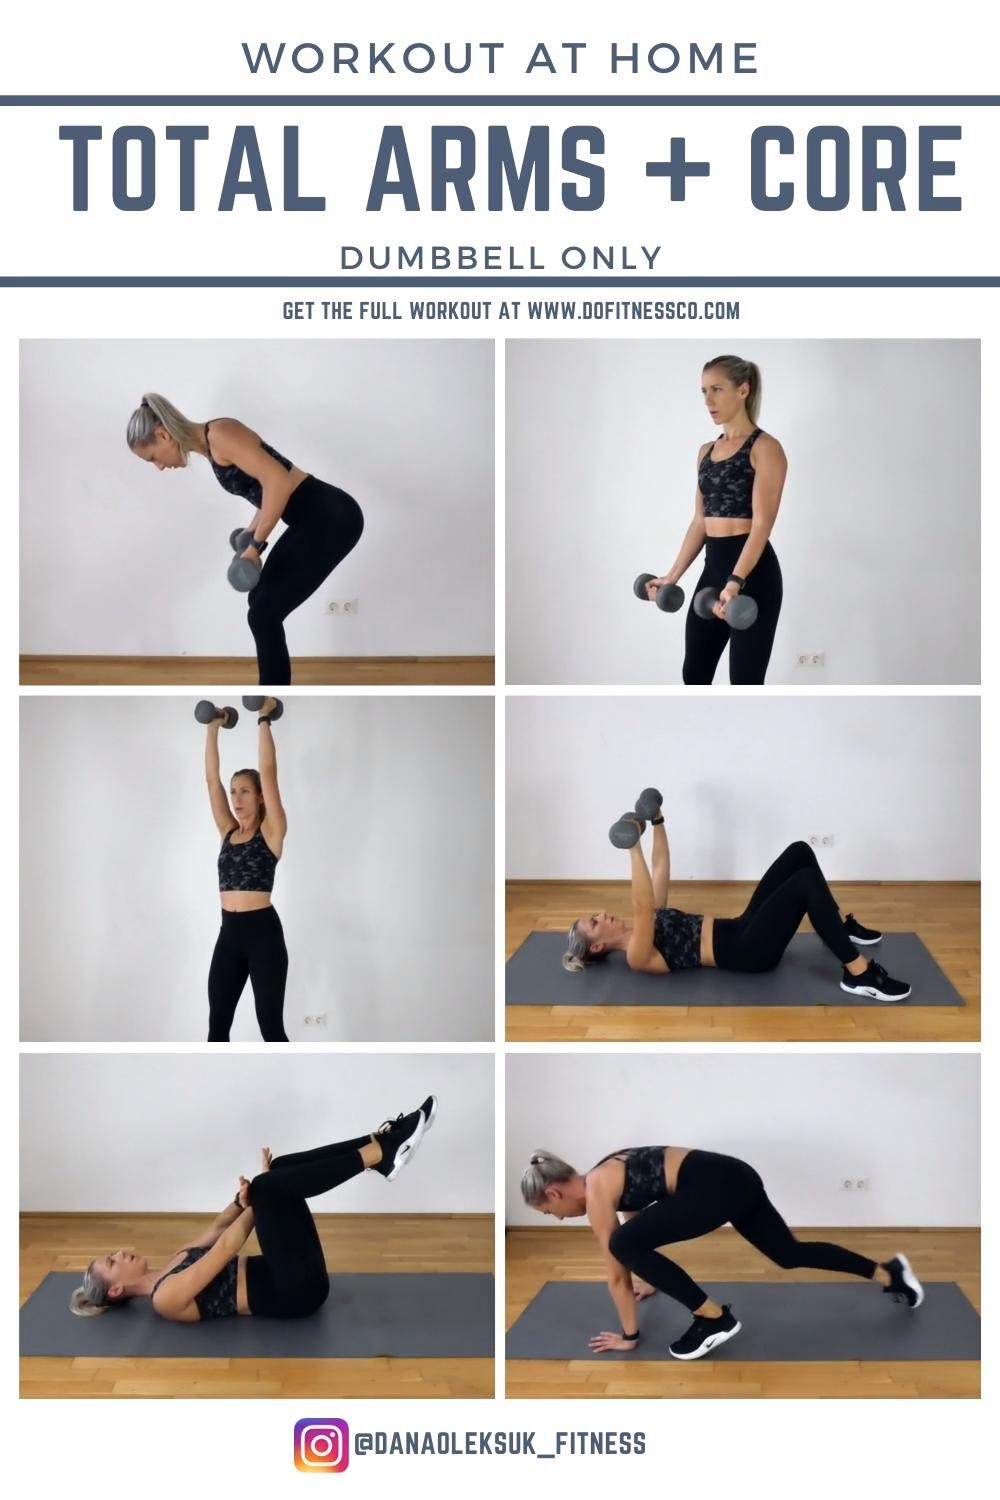 Total Arms + Core - At Home Friendly Workout!